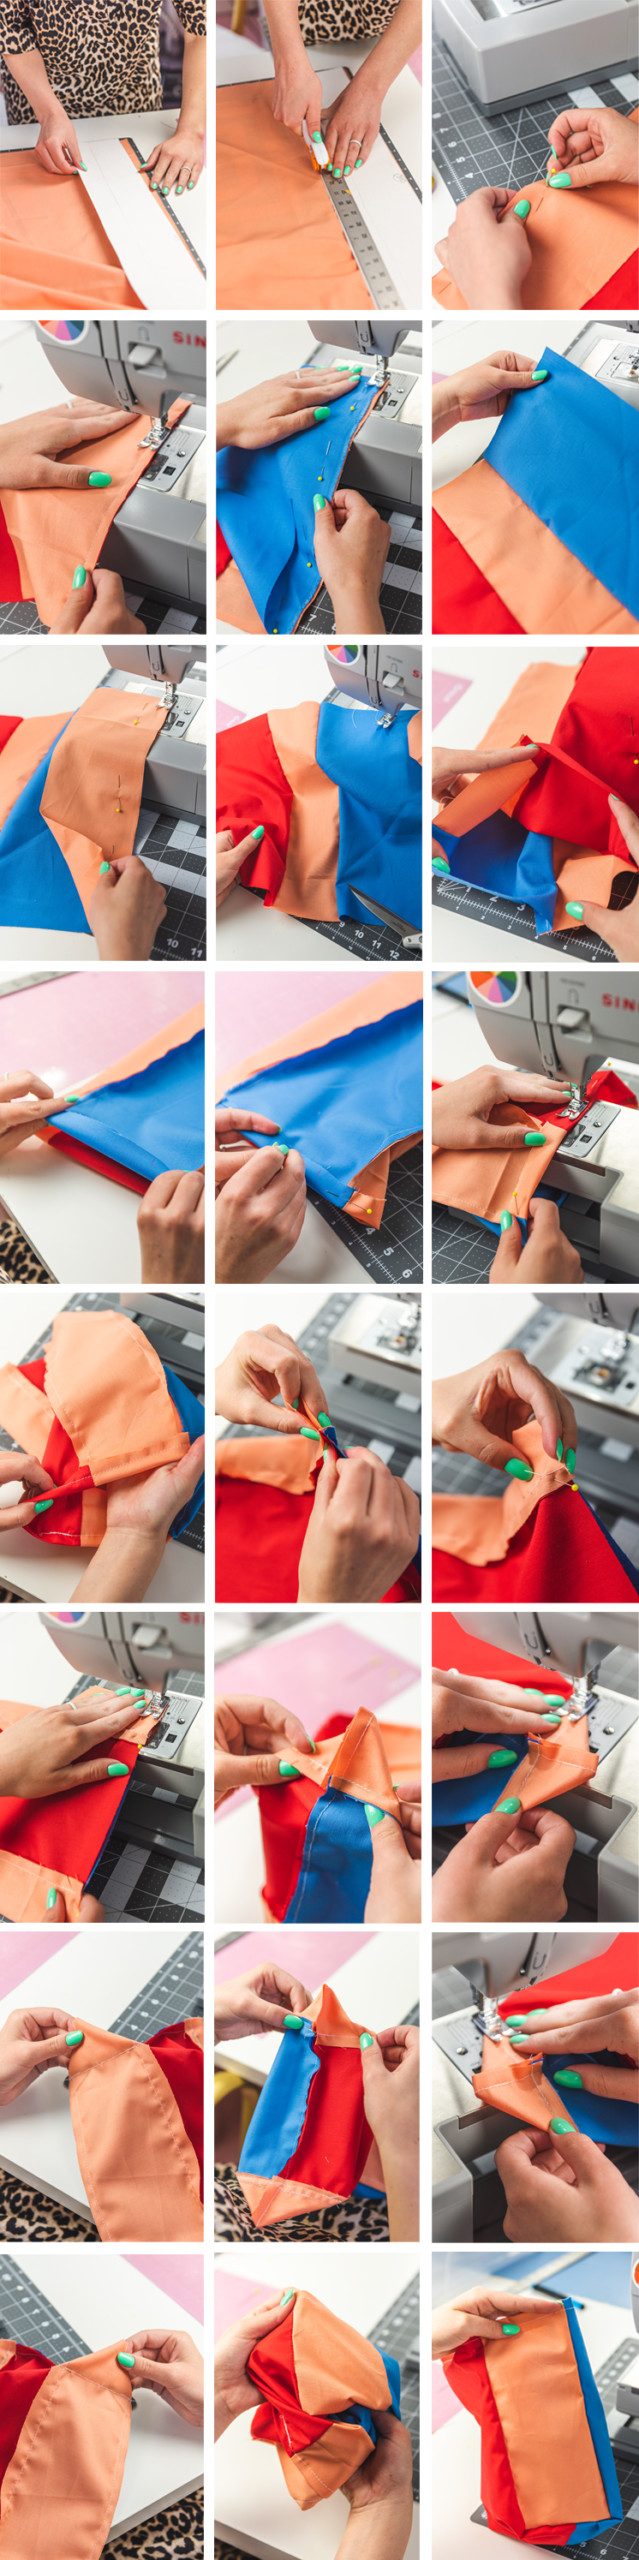 step-by-step instructions showing how to make a reusable fabric lunch sack